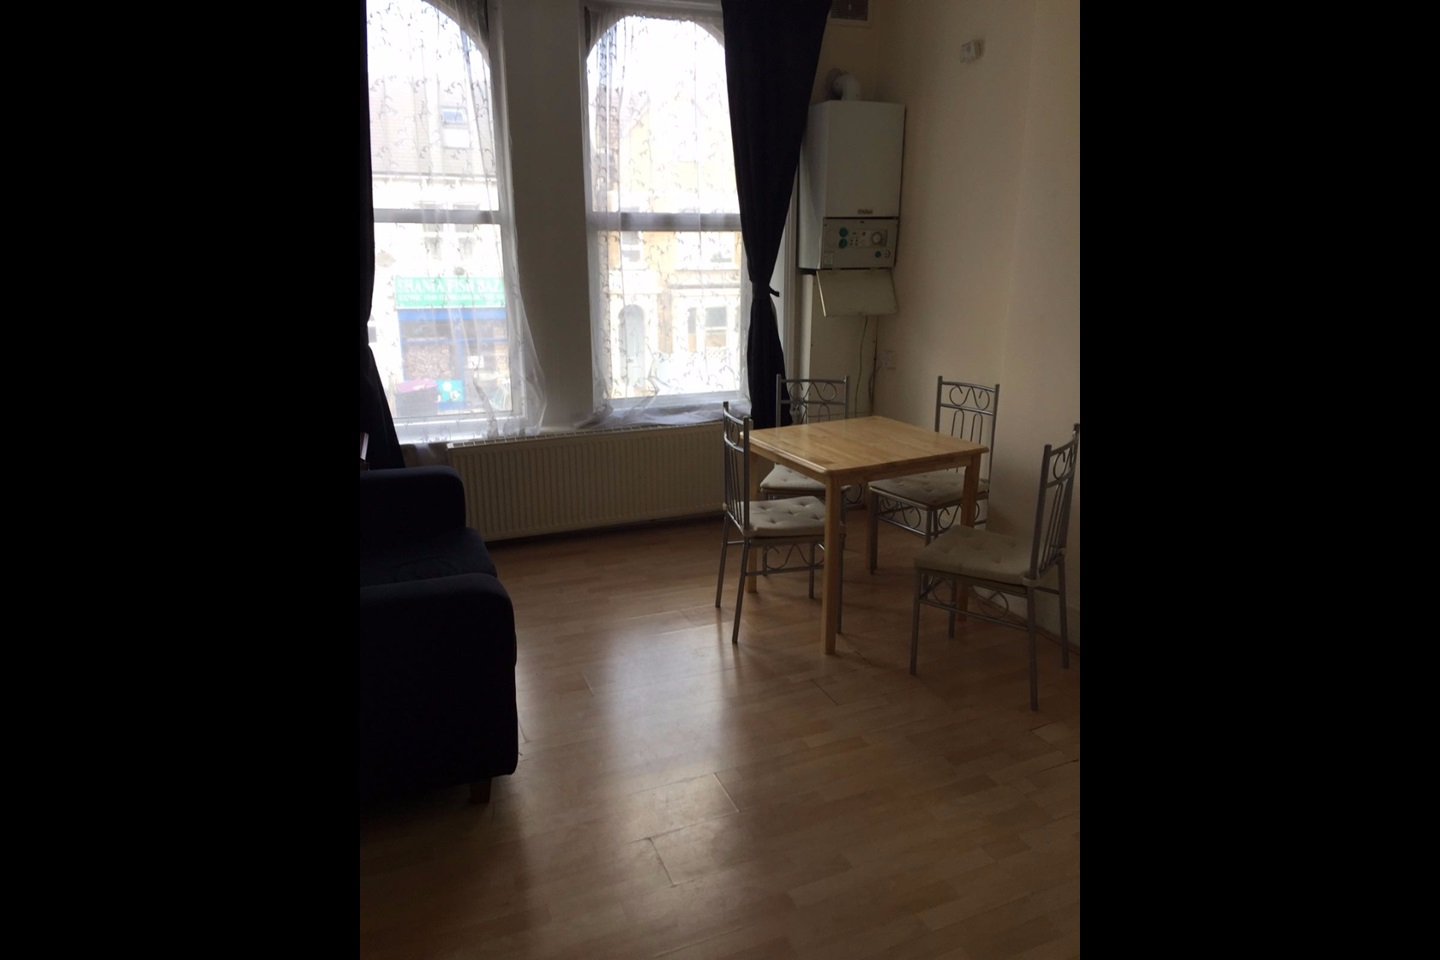 Haringey - 3 Bed Flat, Turnpike Lane, N8 - To Rent Now for